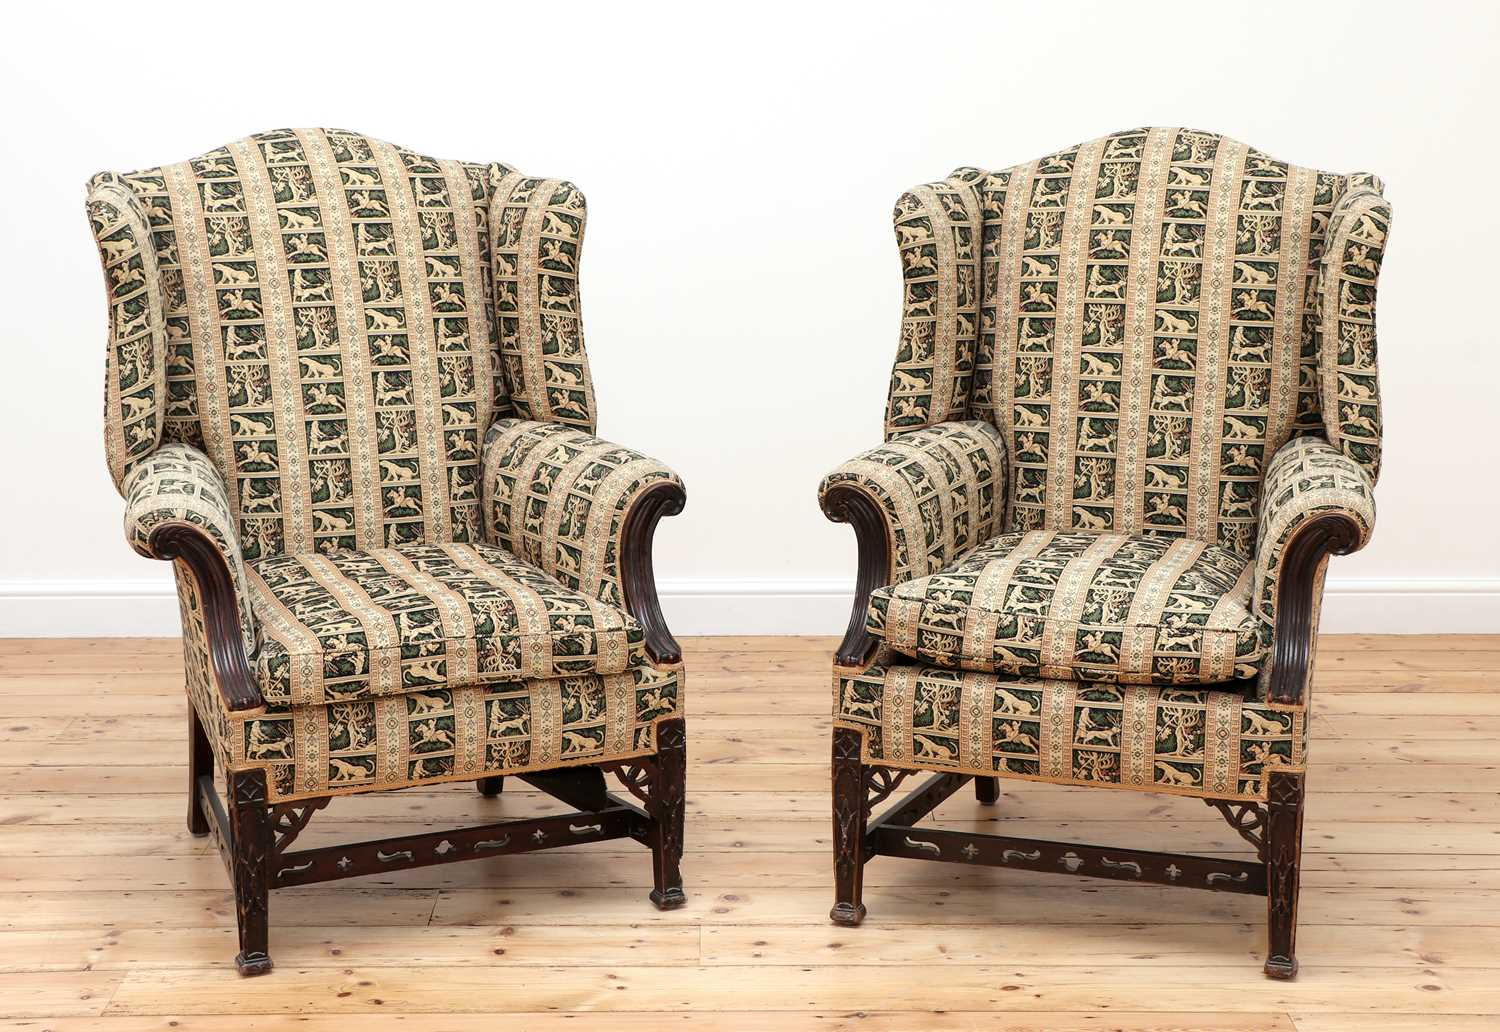 A pair of George III-style mahogany wingback armchairs